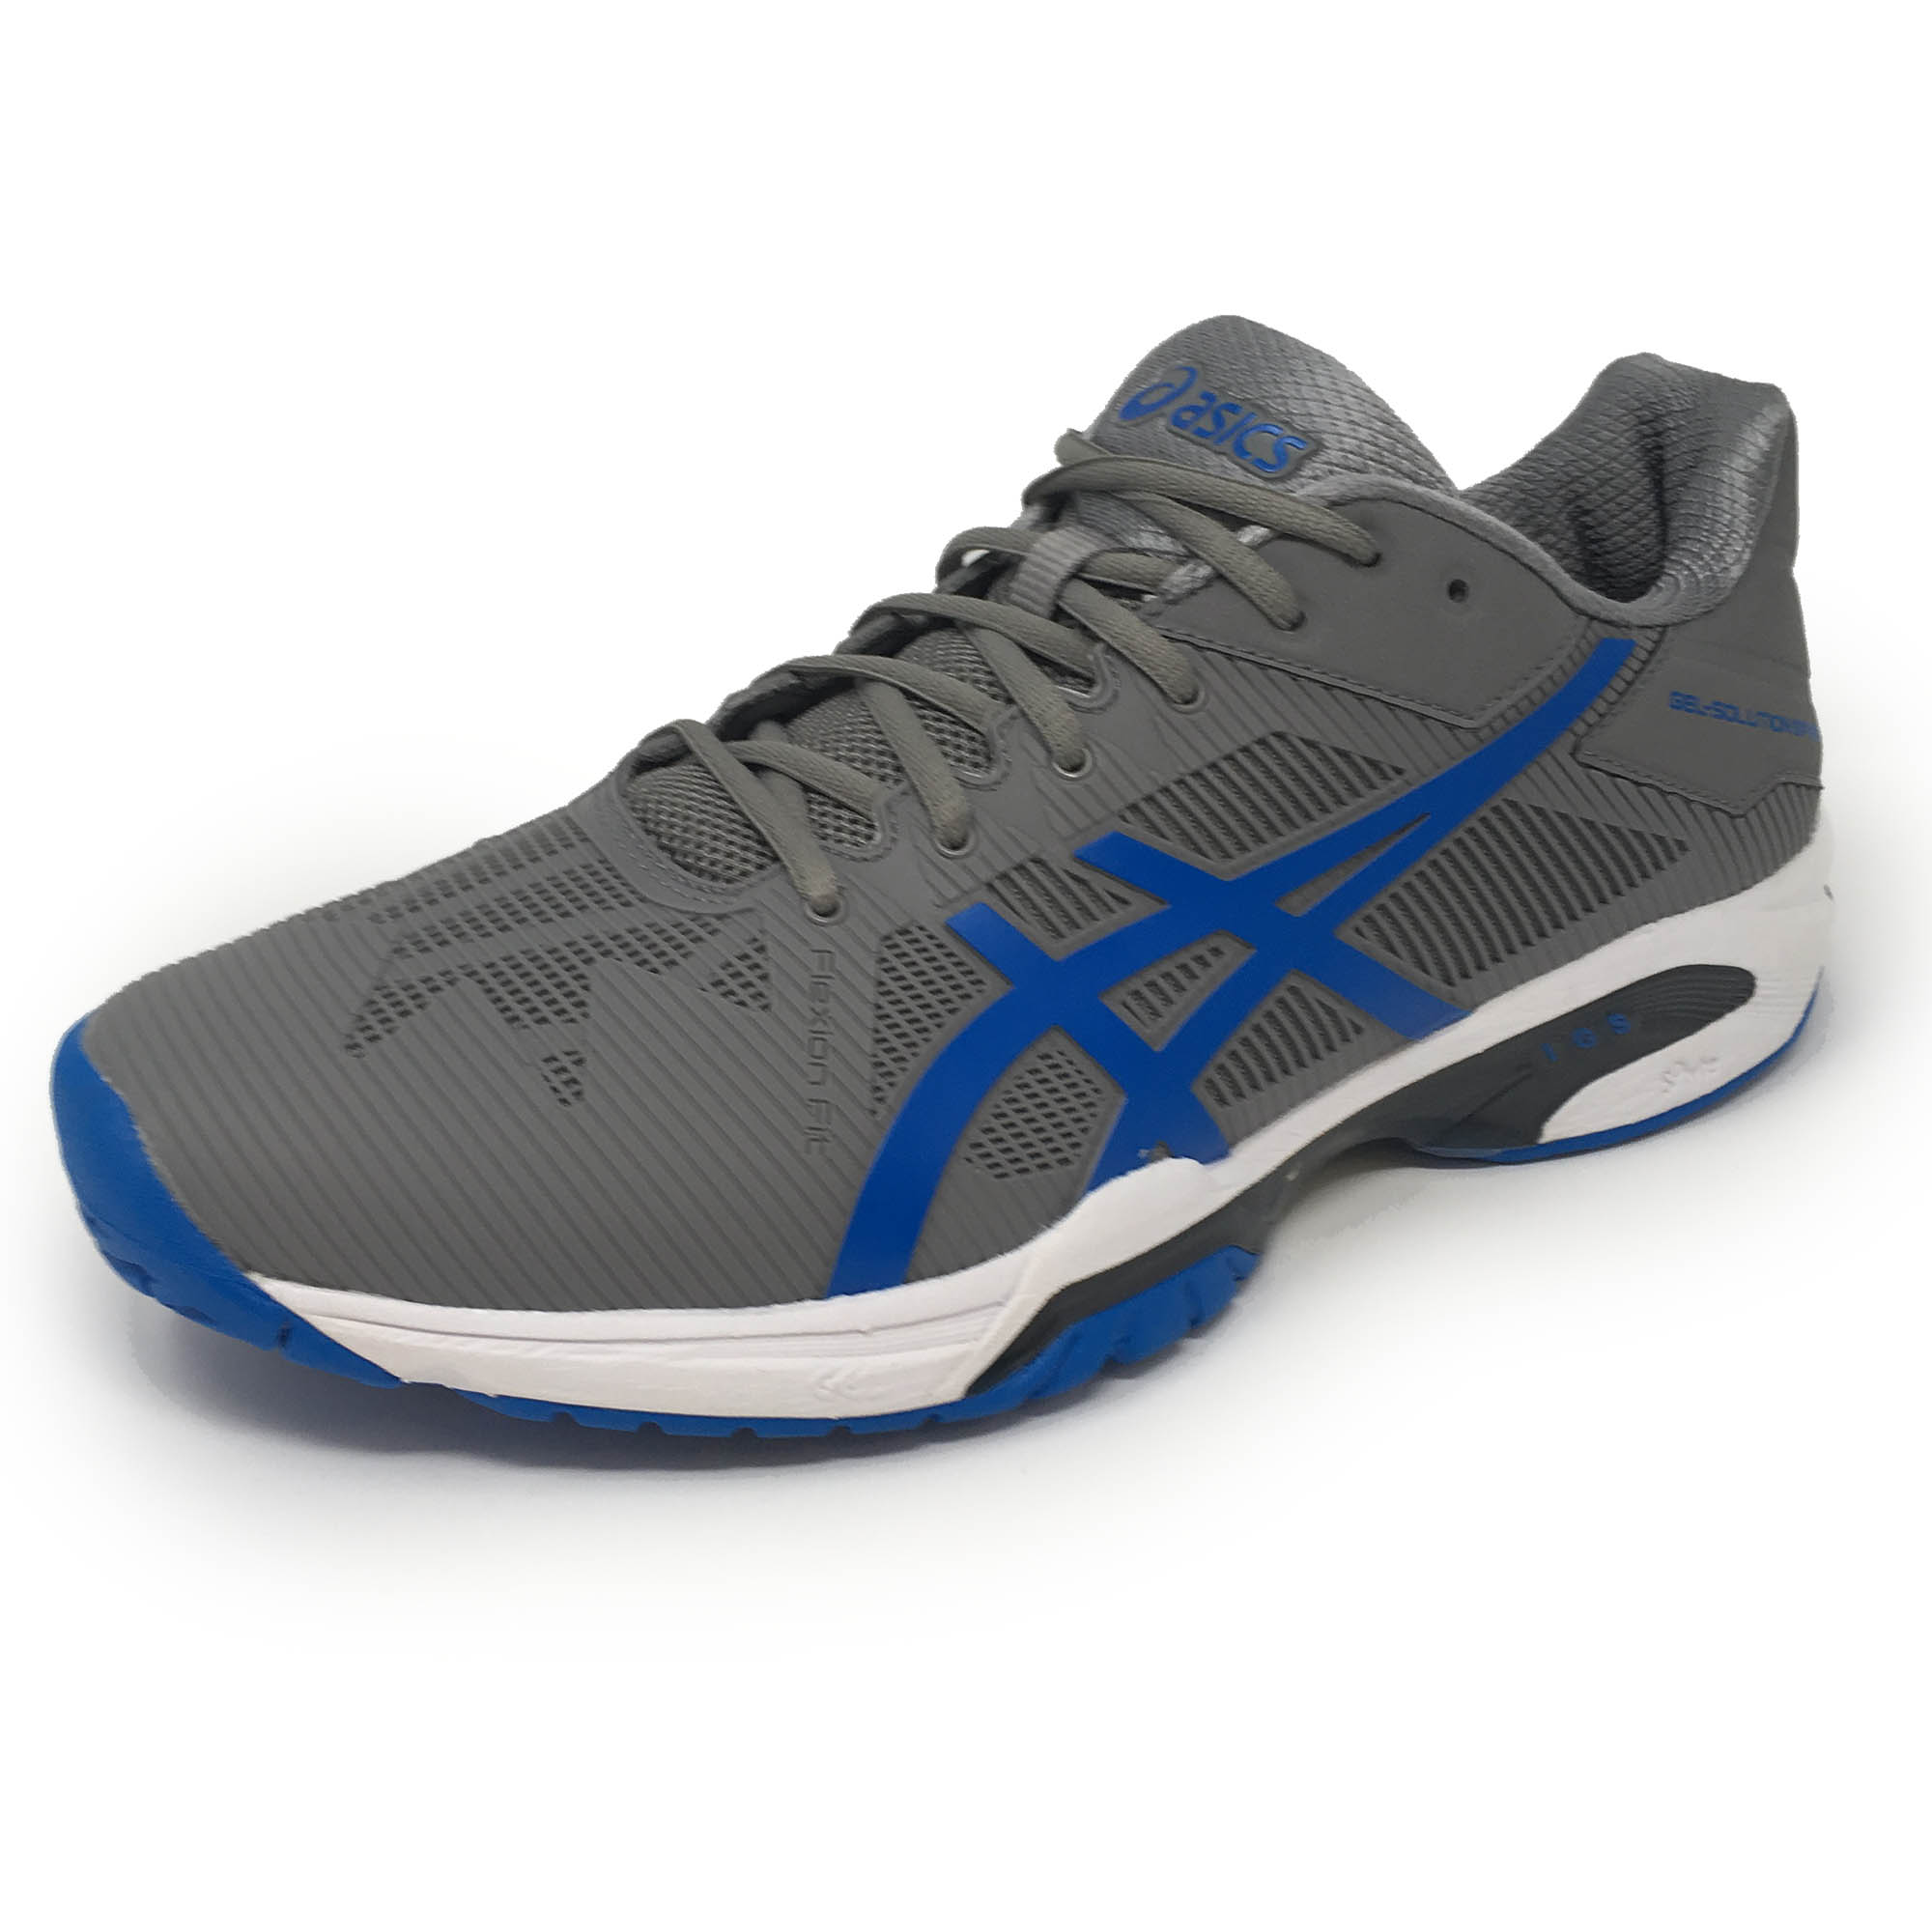 Asics GelSolution Speed 3 Mens Tennis Shoes  GreyBlue 10.5 UK